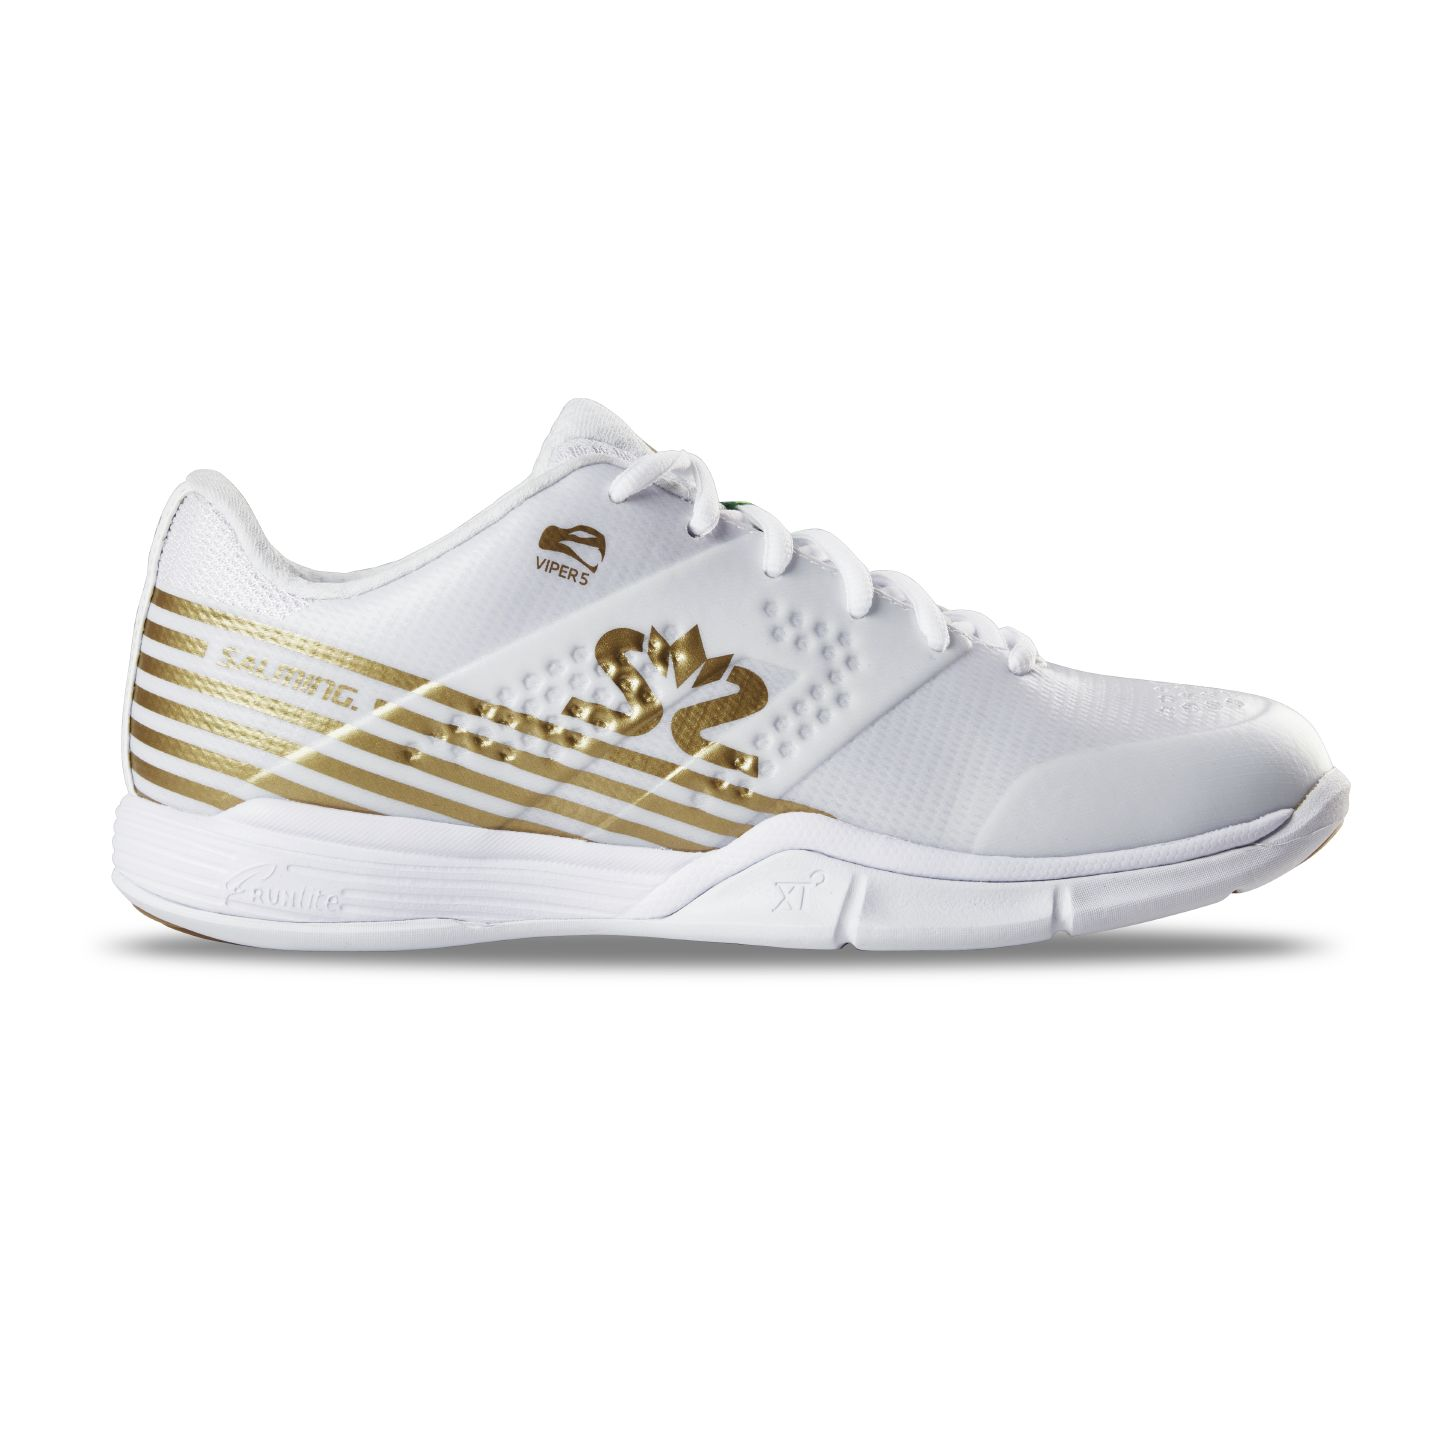 Salming Viper 5 Shoe Women White/Gold 4,5 UK - 37 1/3 EUR - 23,5 cm